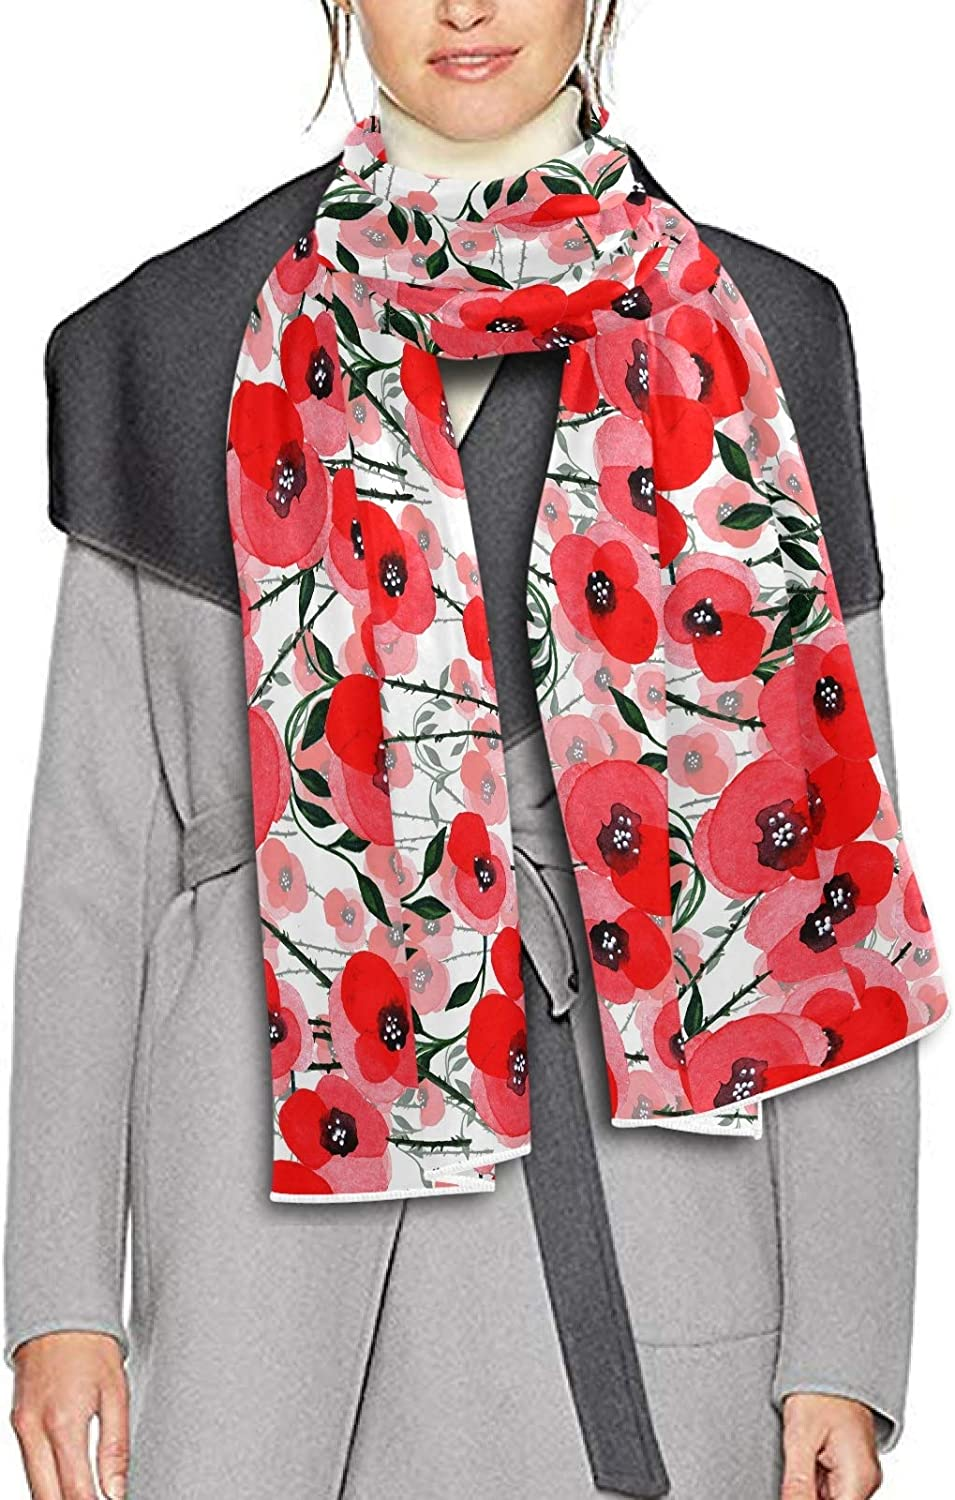 Scarf for Women and Men Wildflower Poppy Blanket Shawl Scarves Wraps Thick Soft Winter Oversized Scarf Lightweight